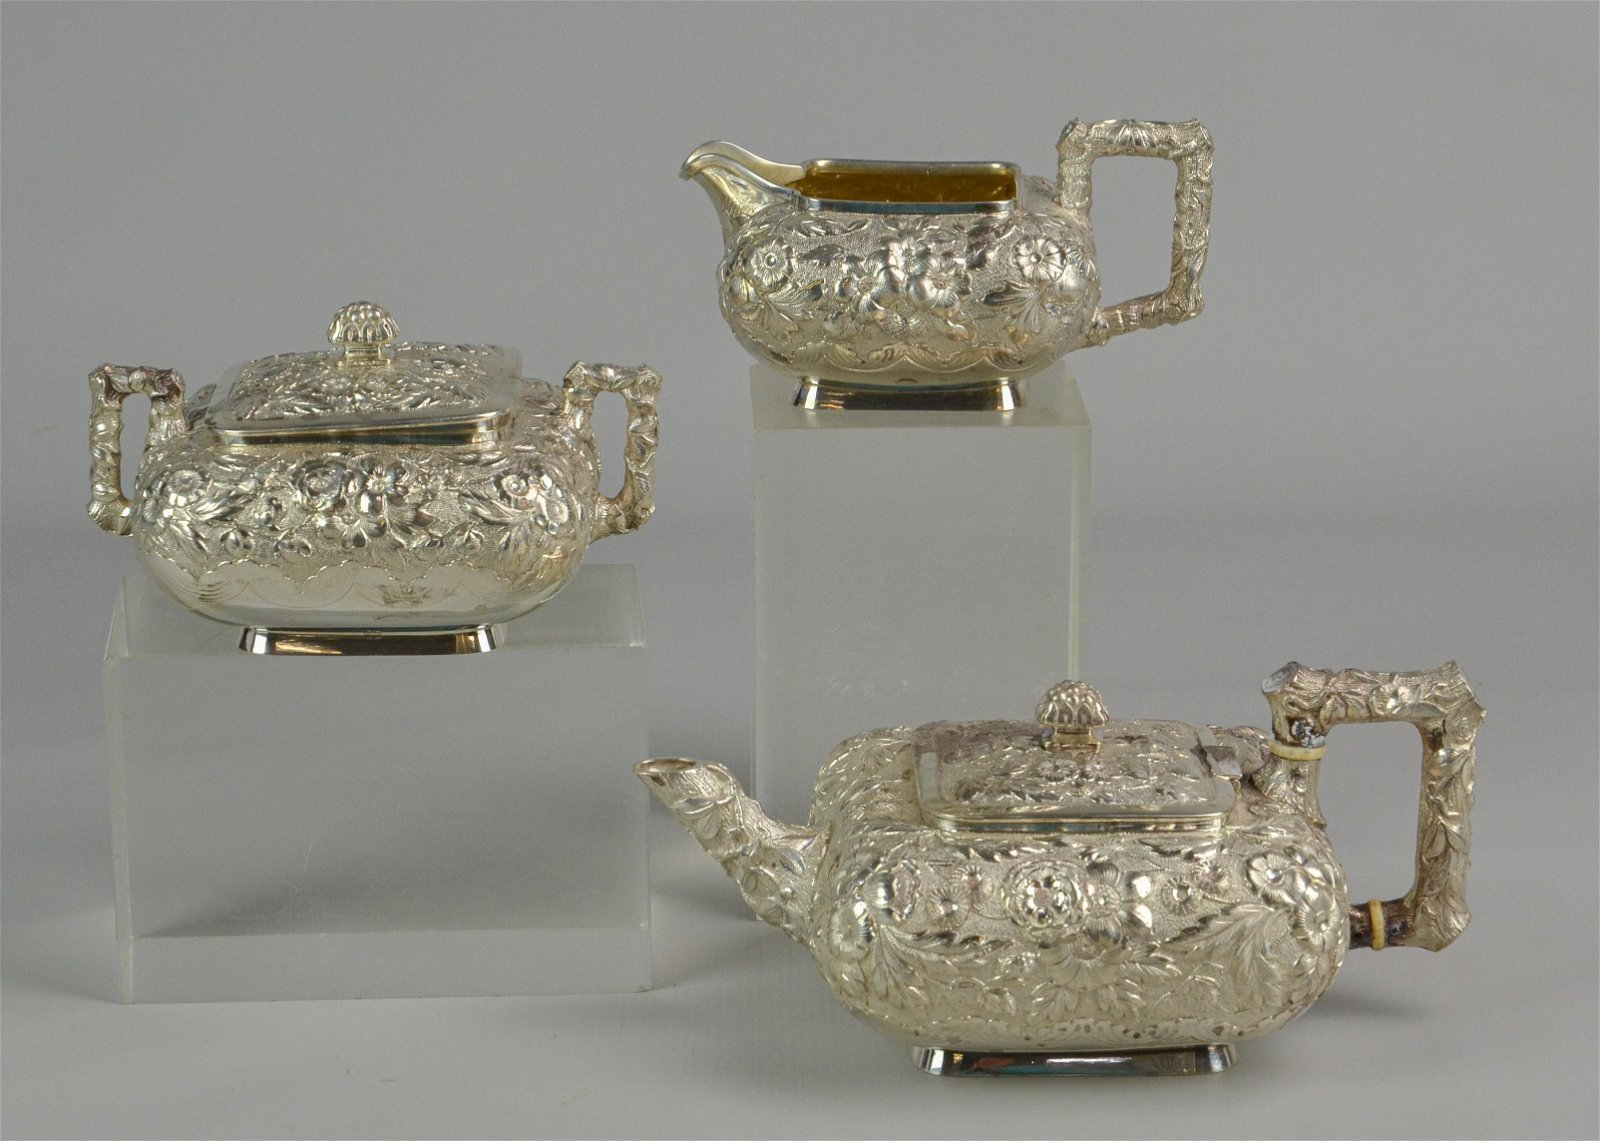 3 pc Whiting Mfg Co sterling repousse tea set